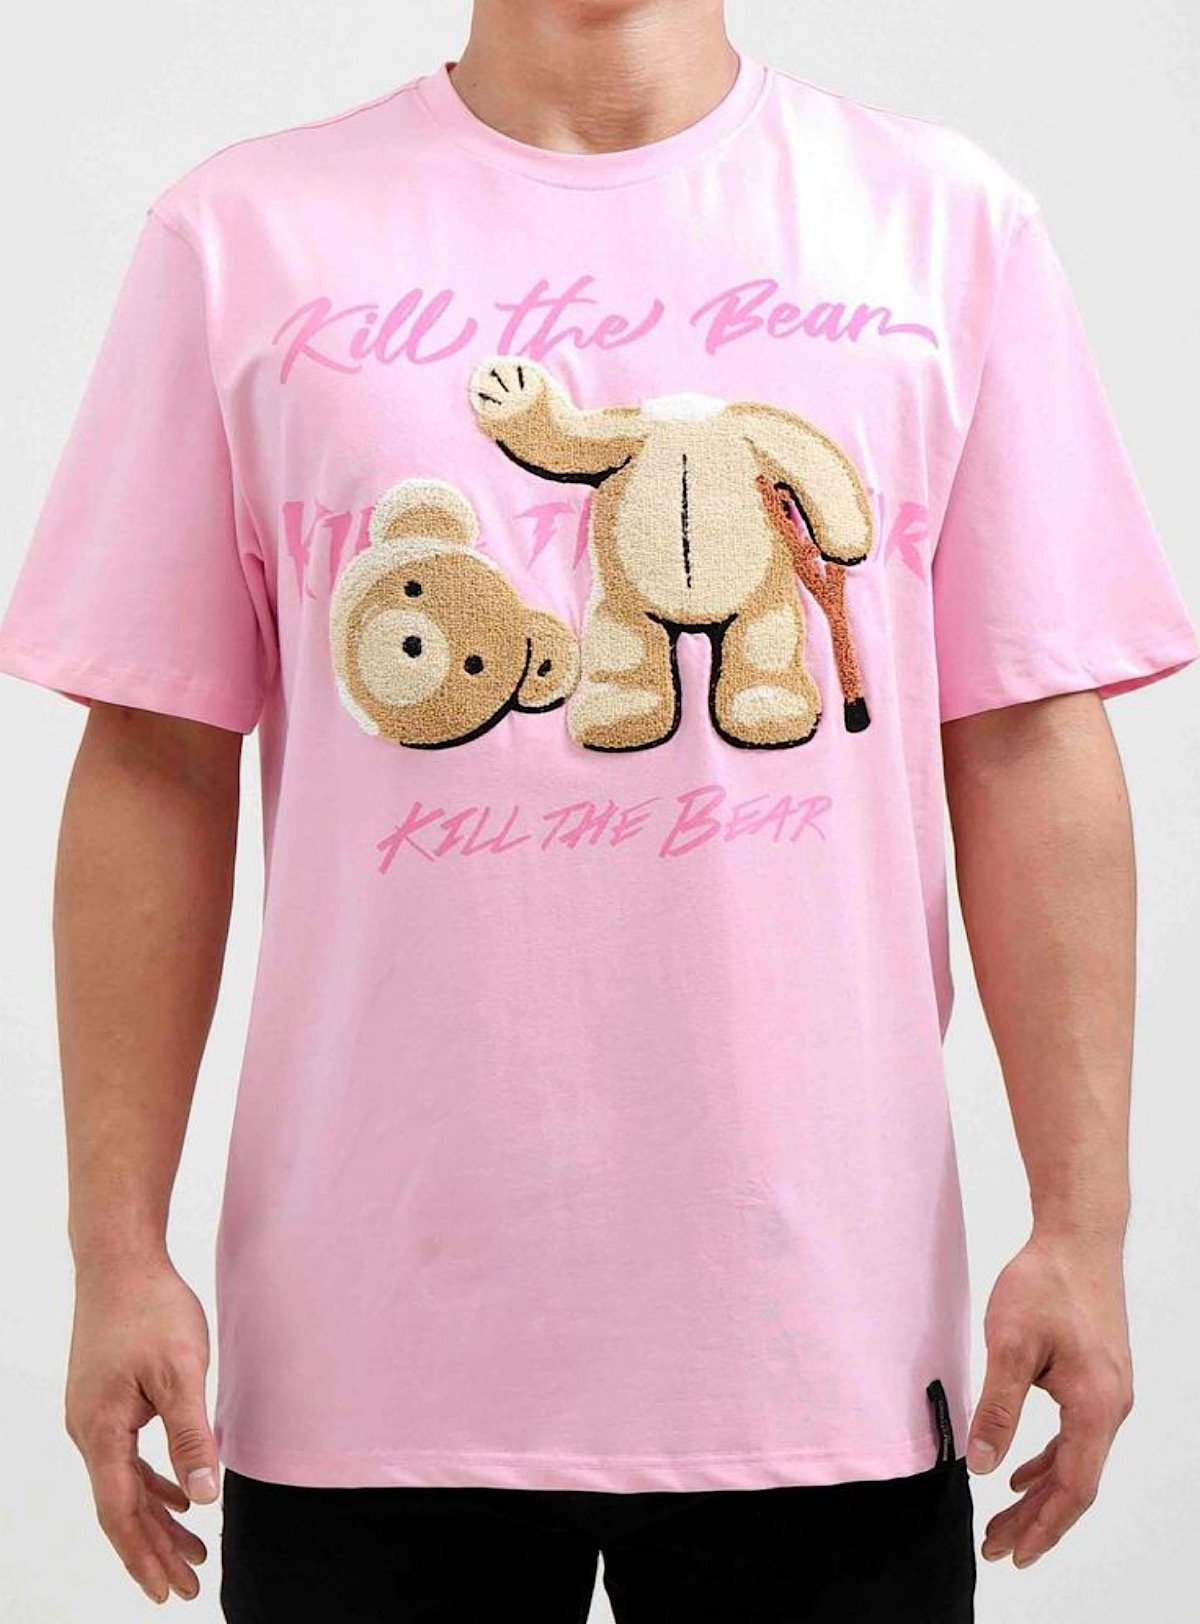 Roku Studio T-Shirt - Kill the Bear - Pink - RK1480191-PNK